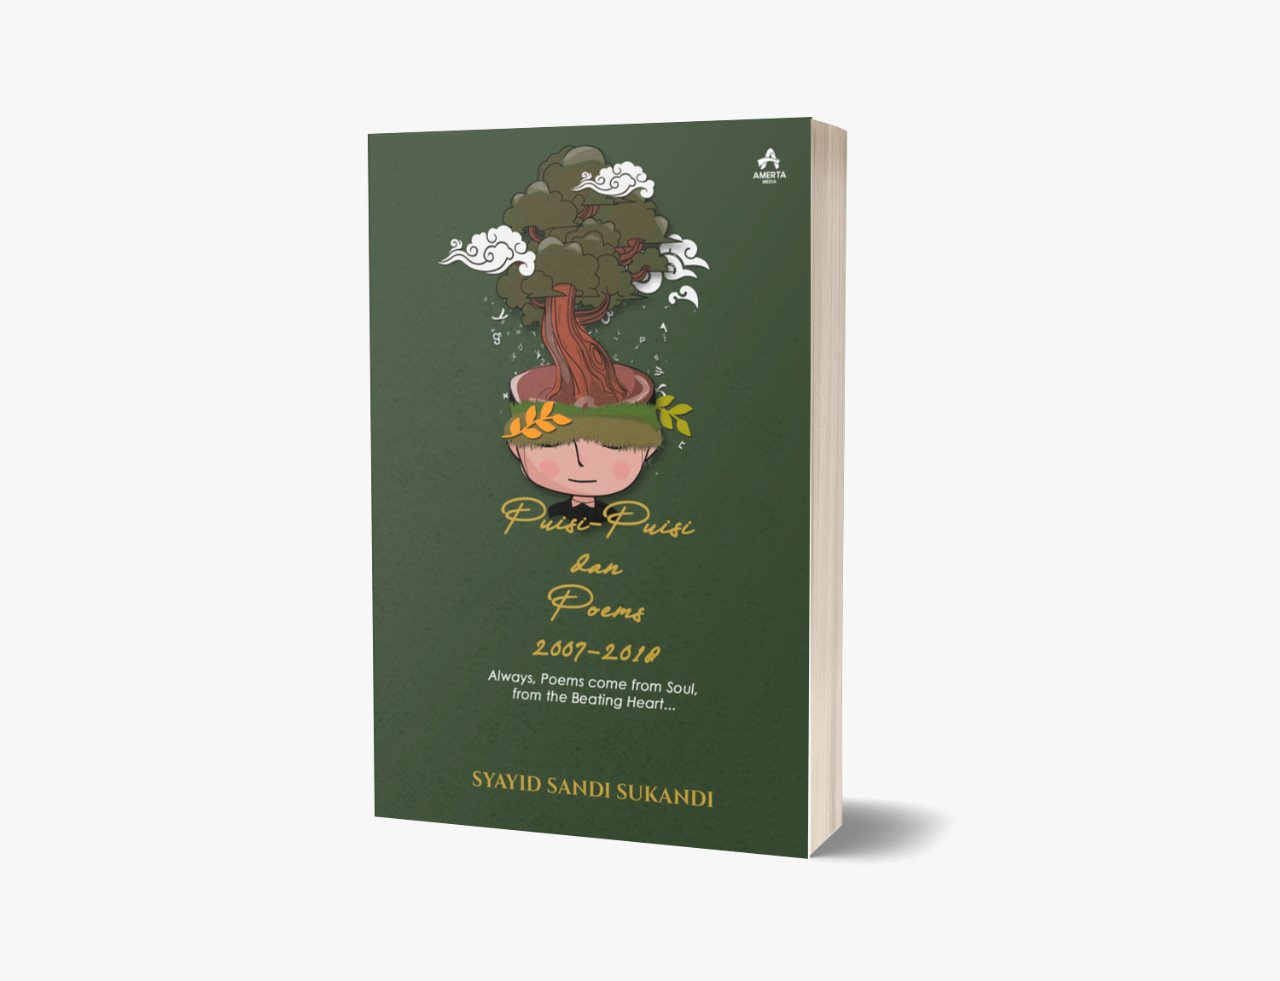 Syayid's Work of Arts: An Anthology Book of Poetry